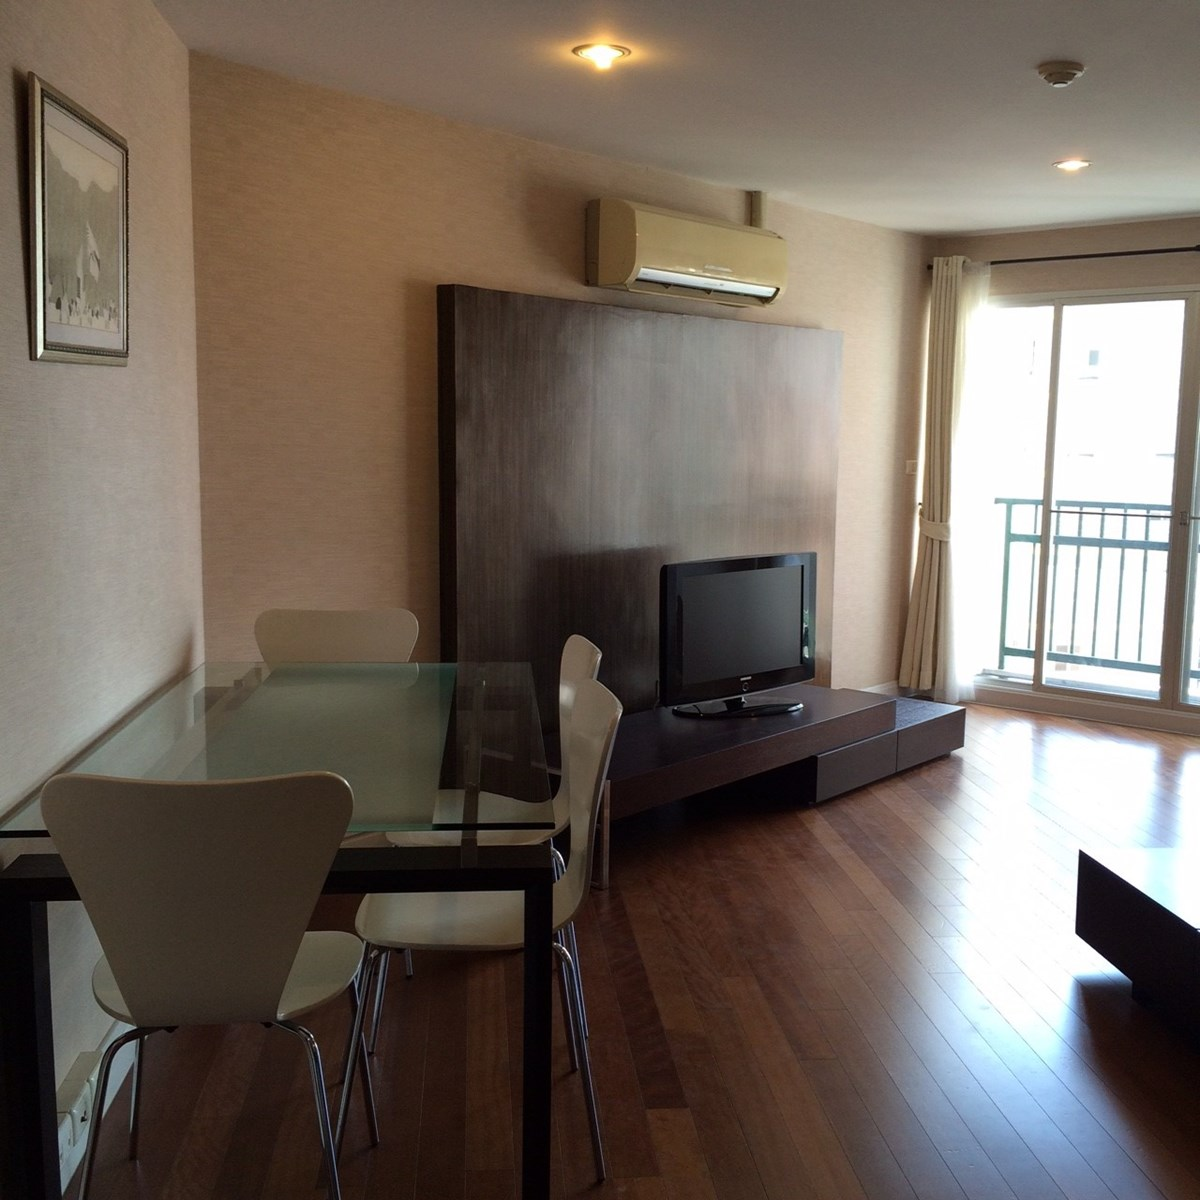 2 Bedroom Condo For Rent Bangkok